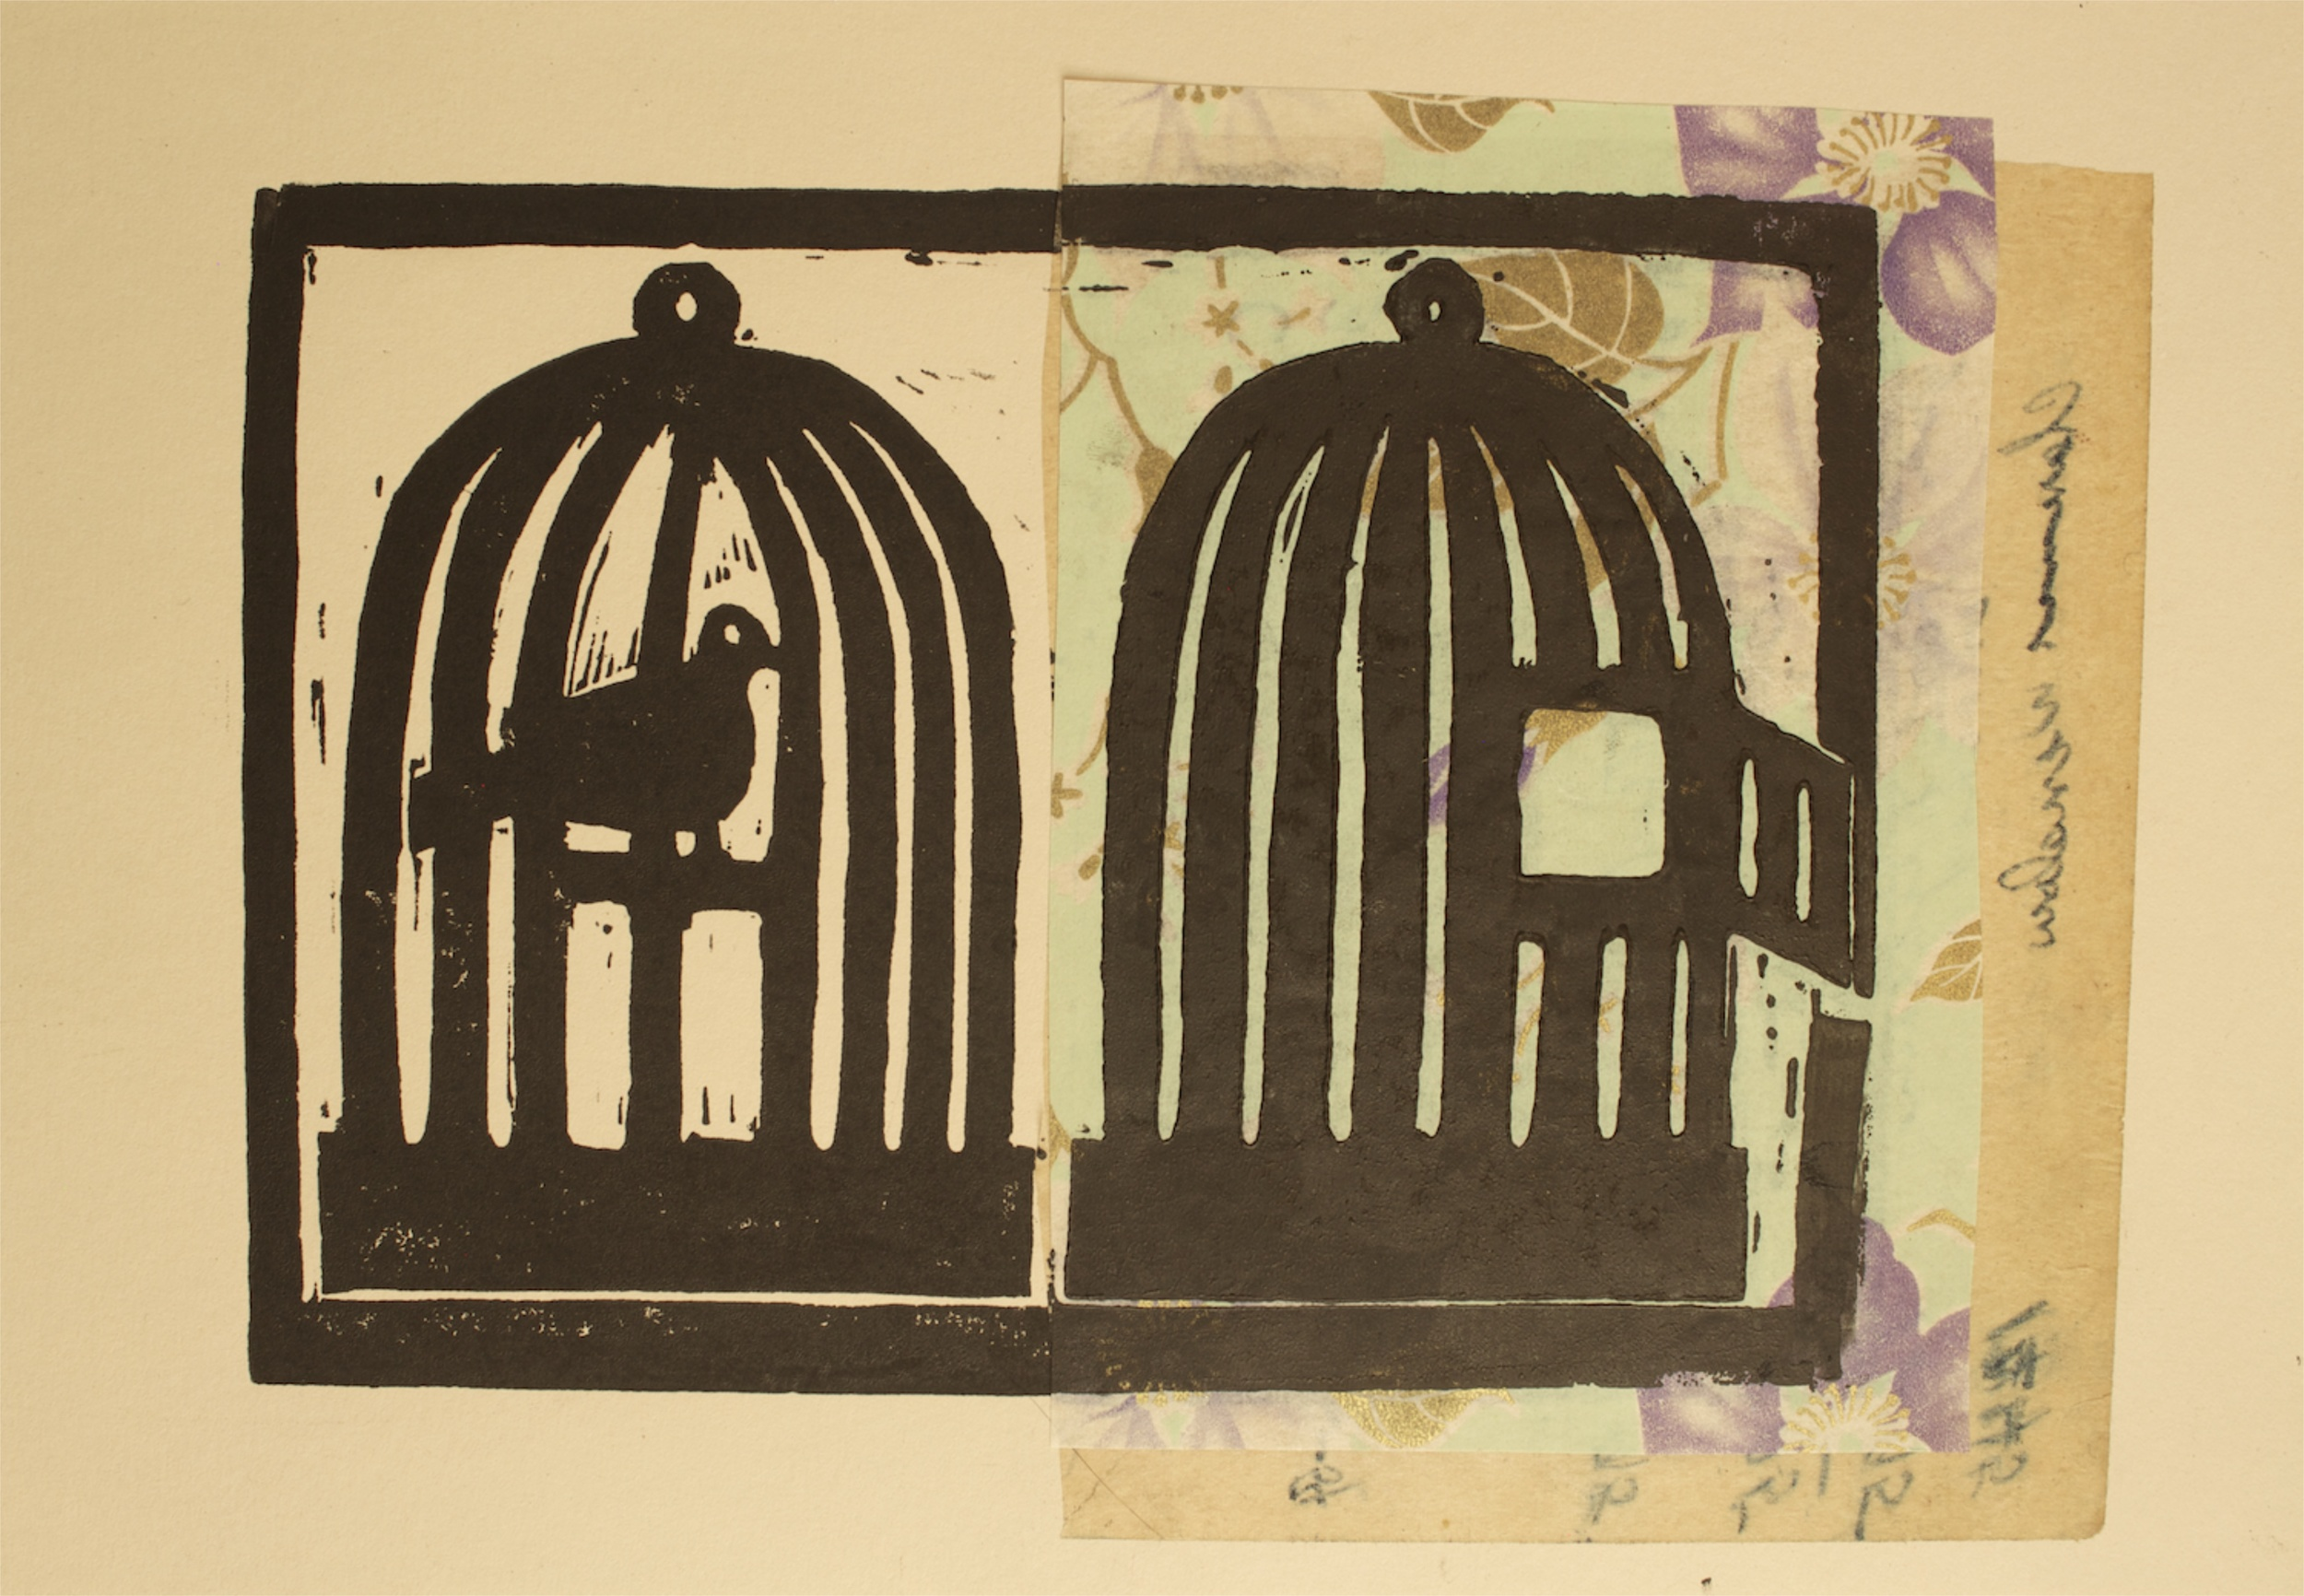 Double Bird Cage, woodblock print, Beerhorst